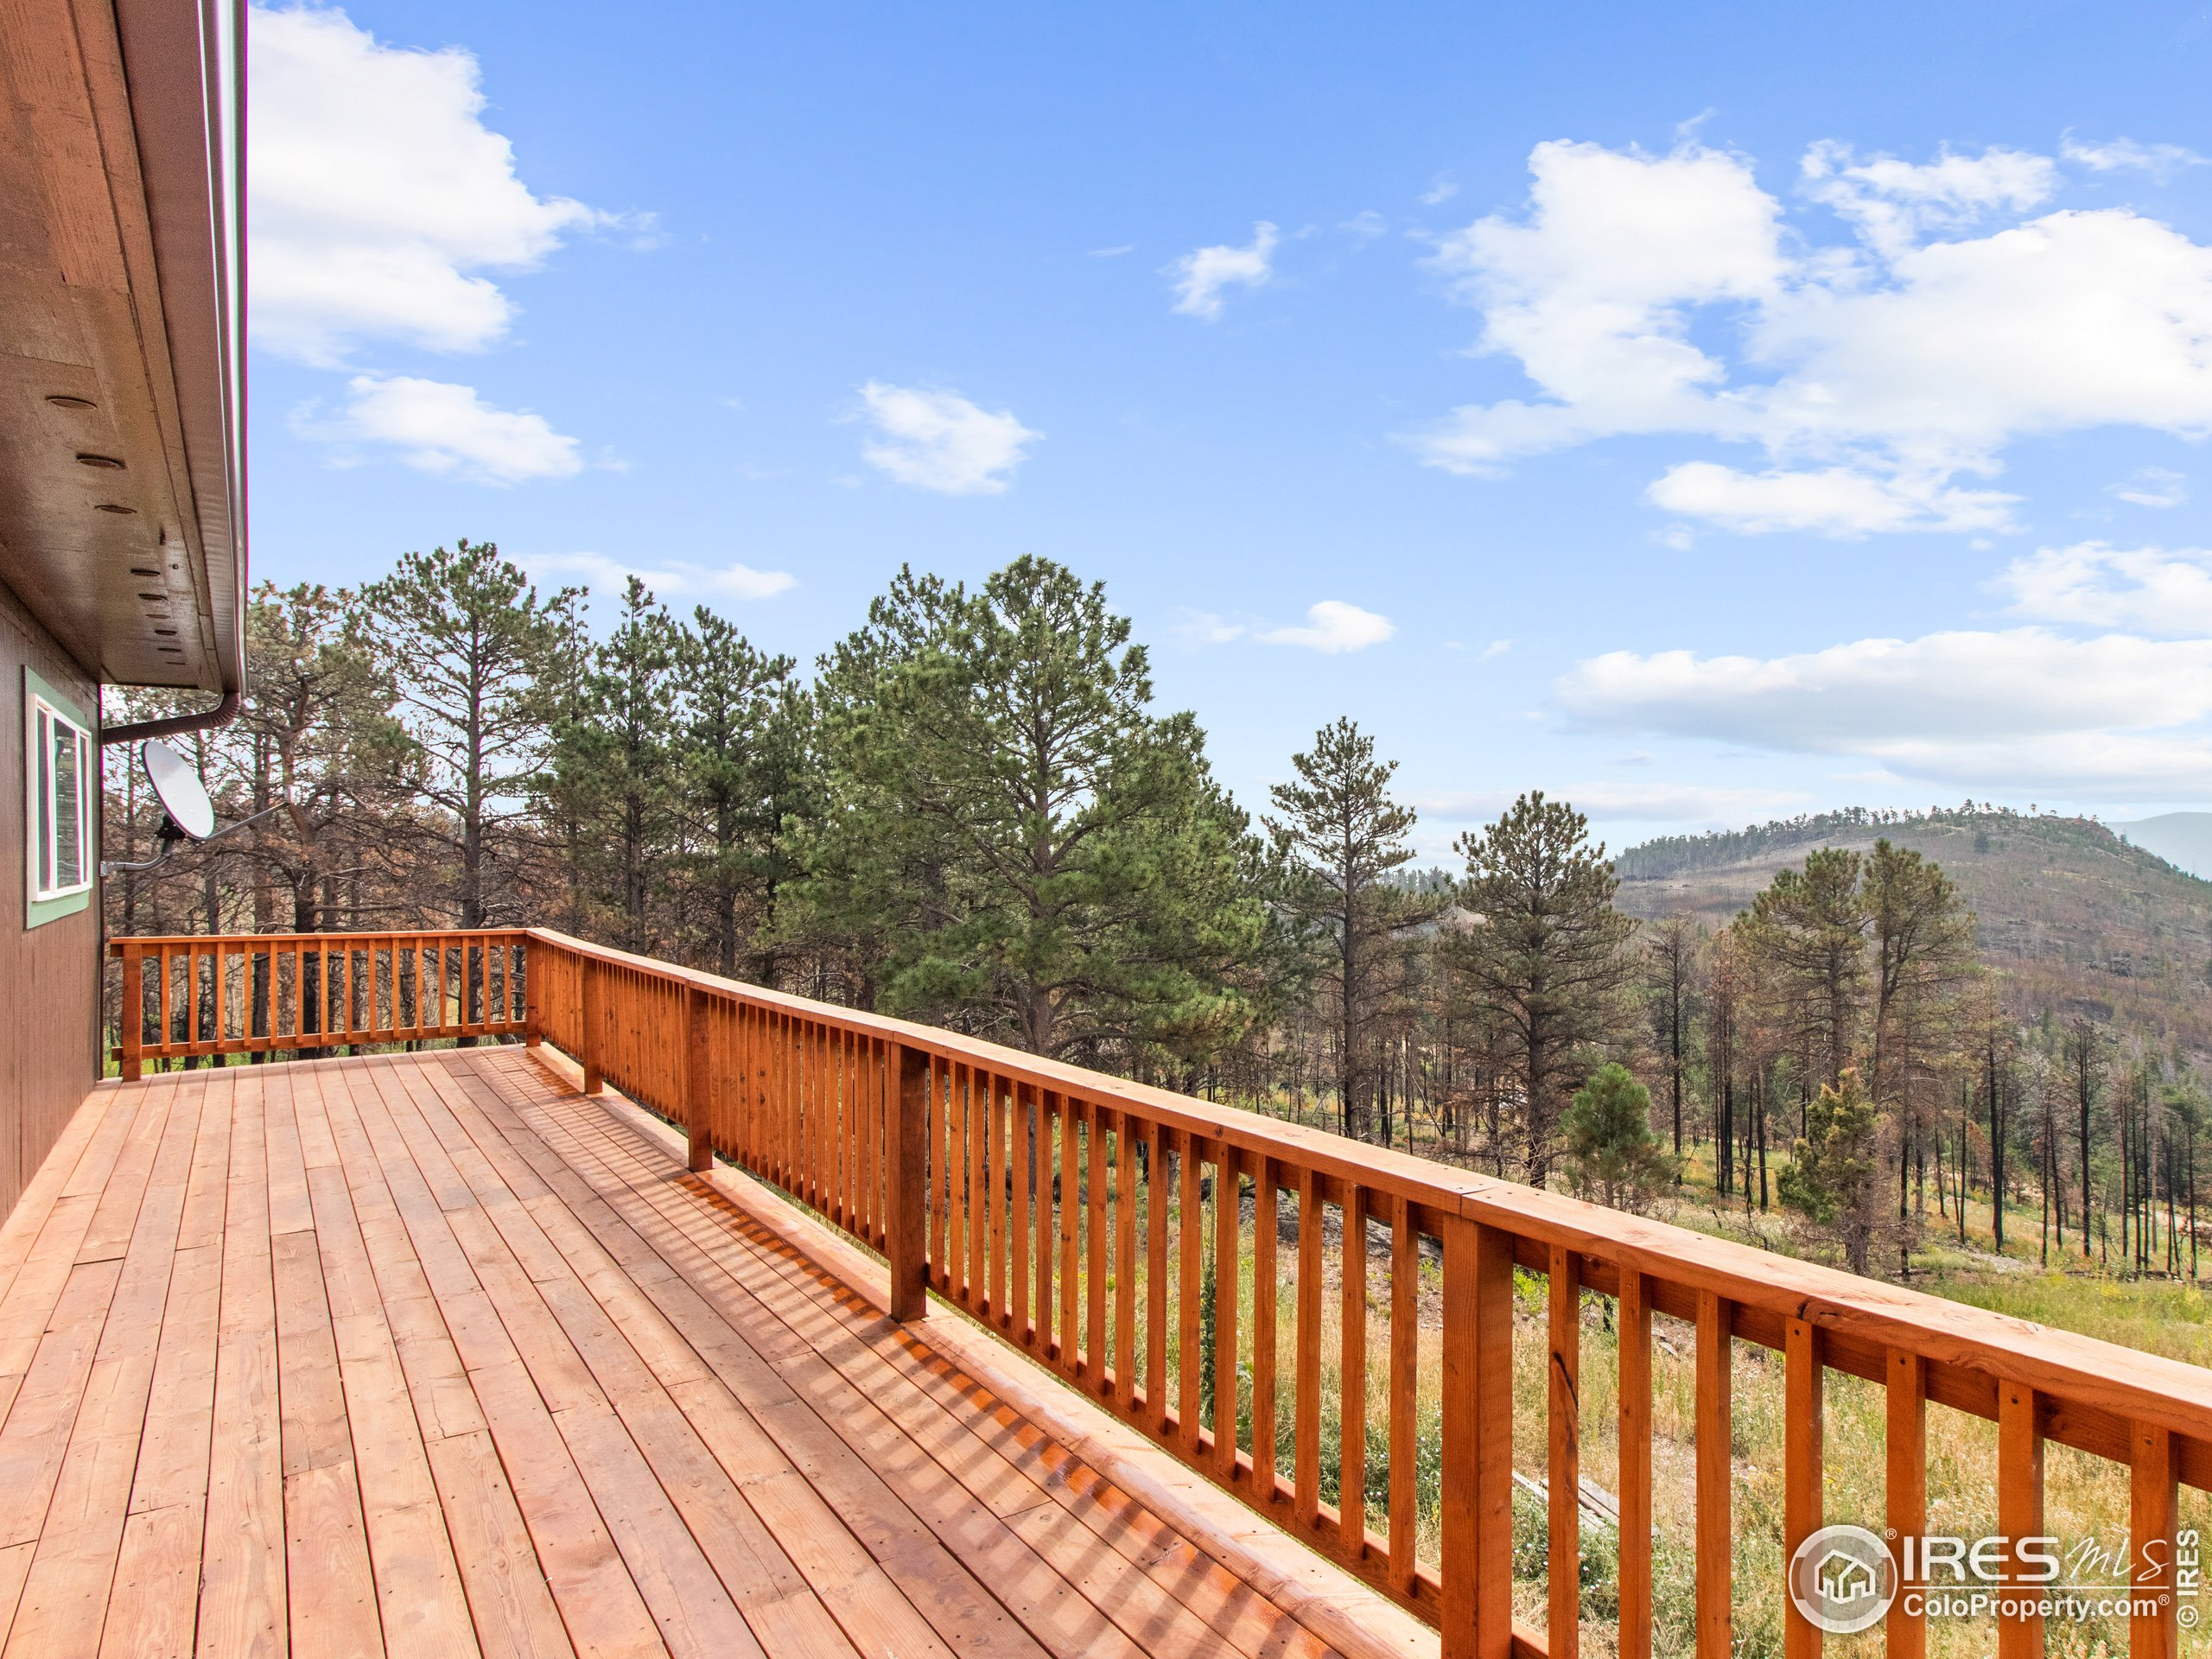 Relax on the newly stained deck!